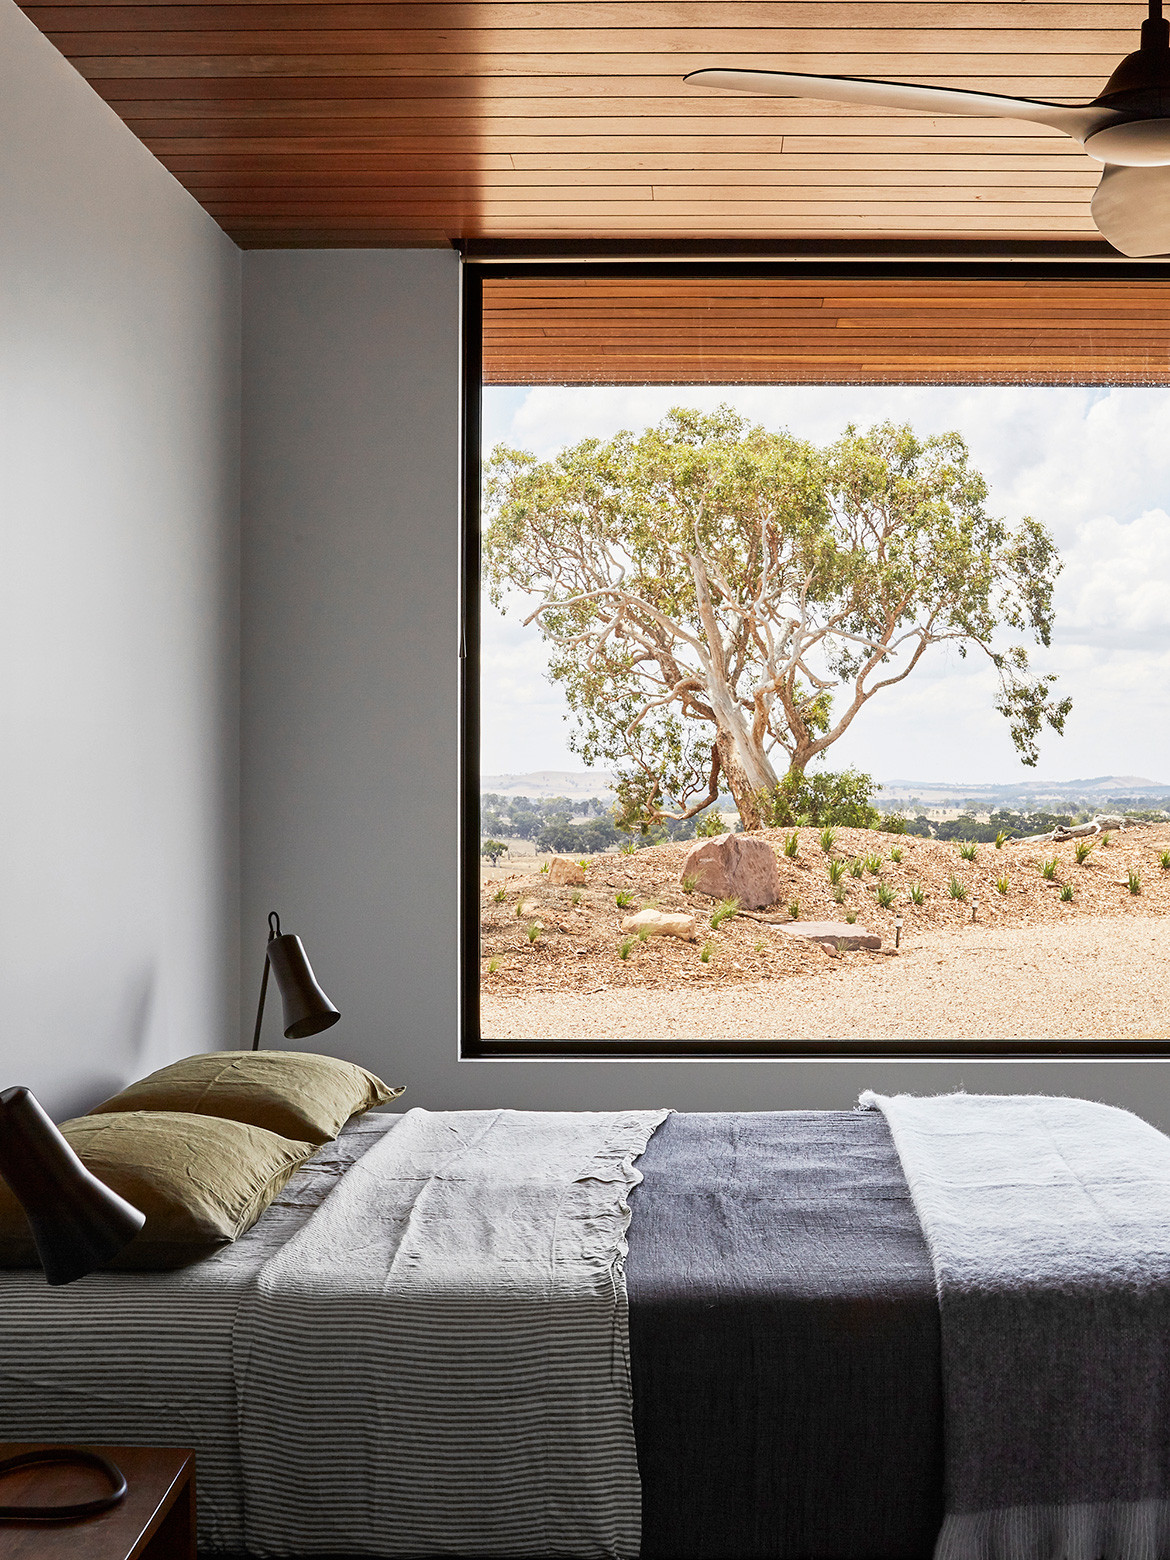 Elemental House Ben Callery Architects cc Dave Kulesza bedroom